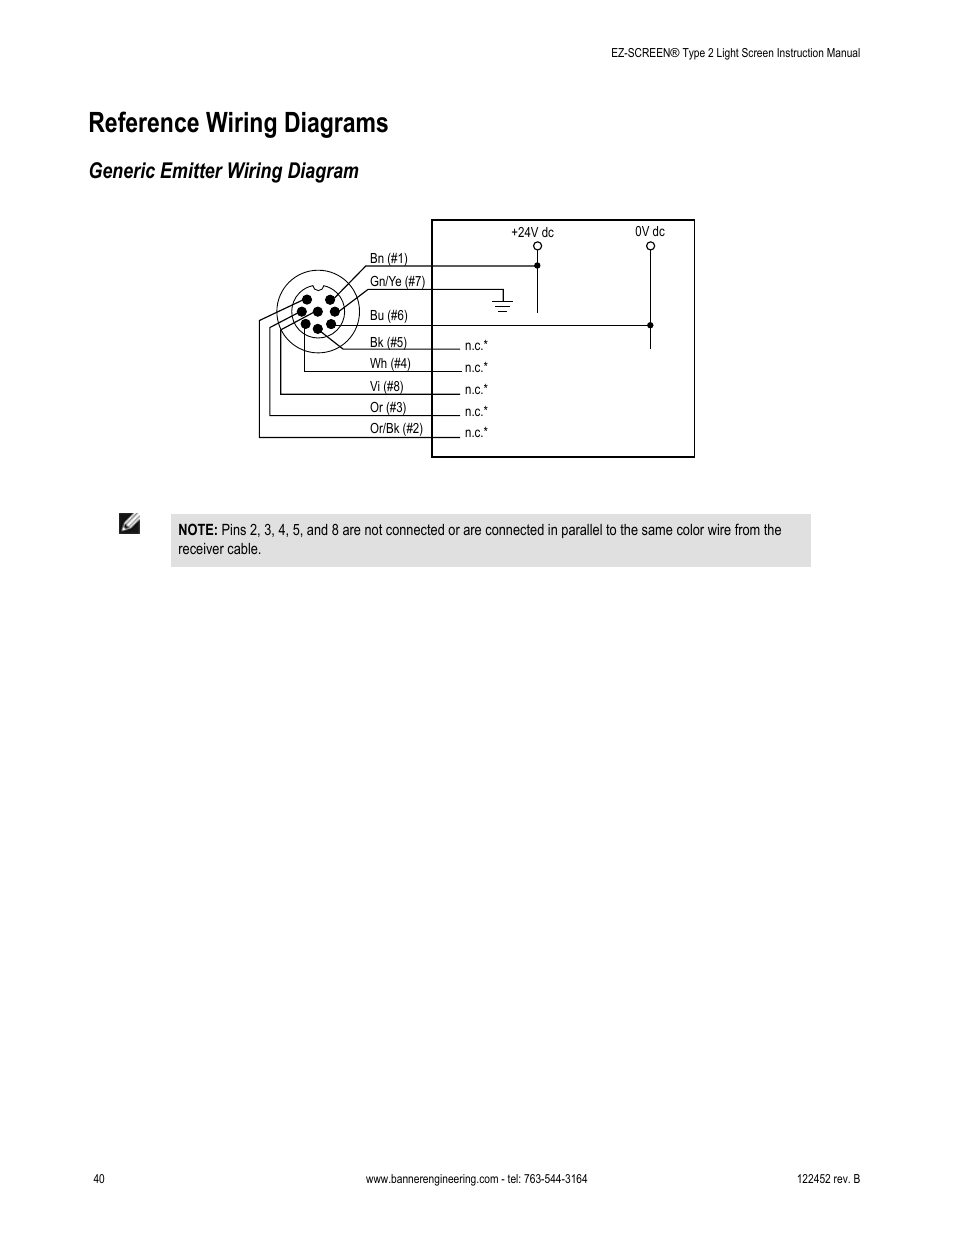 Parallel Wire Diagram Reference Wiring Diagrams Generic Emitter Banner Ez Screen Safety Light Curtain Systems User Manual Page 40 71